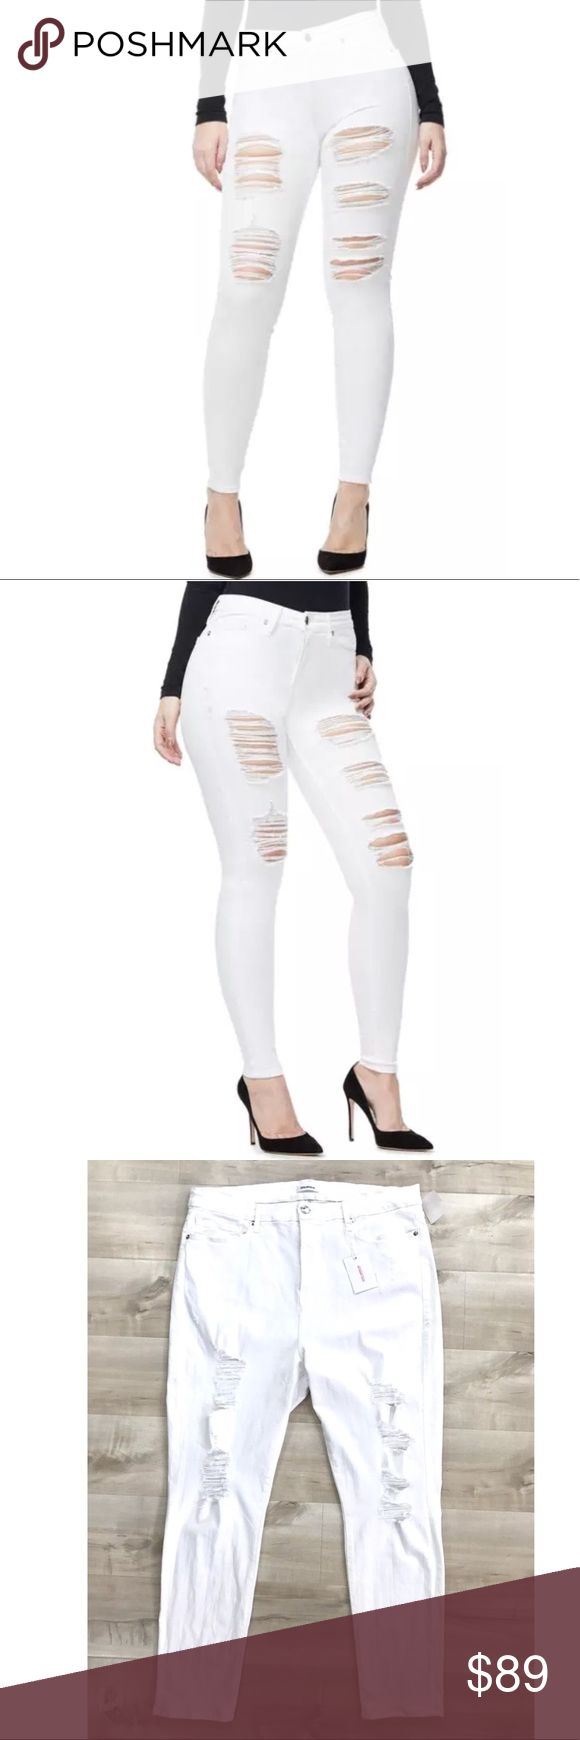 "Good American Good Legs Ripped High Rise Jeans * Good American Good Legs Ripped High Rise Skinny Jeans White   * New with tag/defect: This item has an original tag. It was Nordstrom store display and brand new.  * Skinny fit.   * High rise  * Slimming silhouette  * White wash denim  * Ripped with destruction down legs  * Made in USA with imported materials.   * 91.5% Cotton | 6% Polyester | 2.5% Elastane * MSRP $179.00  * Size 22 - Approximately 19"" waist(side to side), 13"" Rise , 29.5""…"